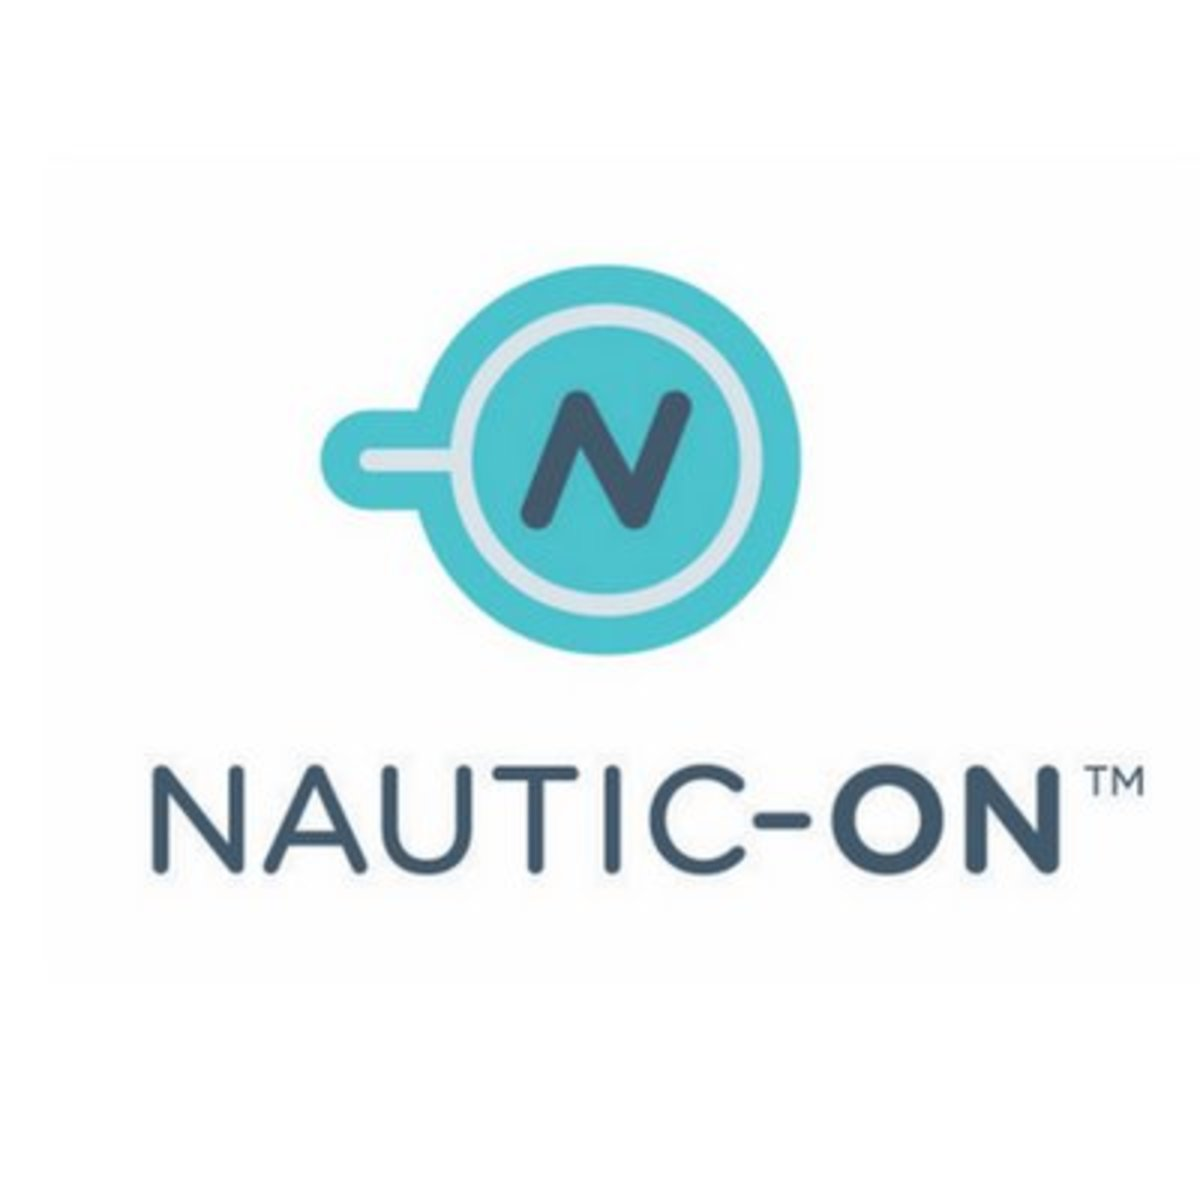 nautic-on-logo